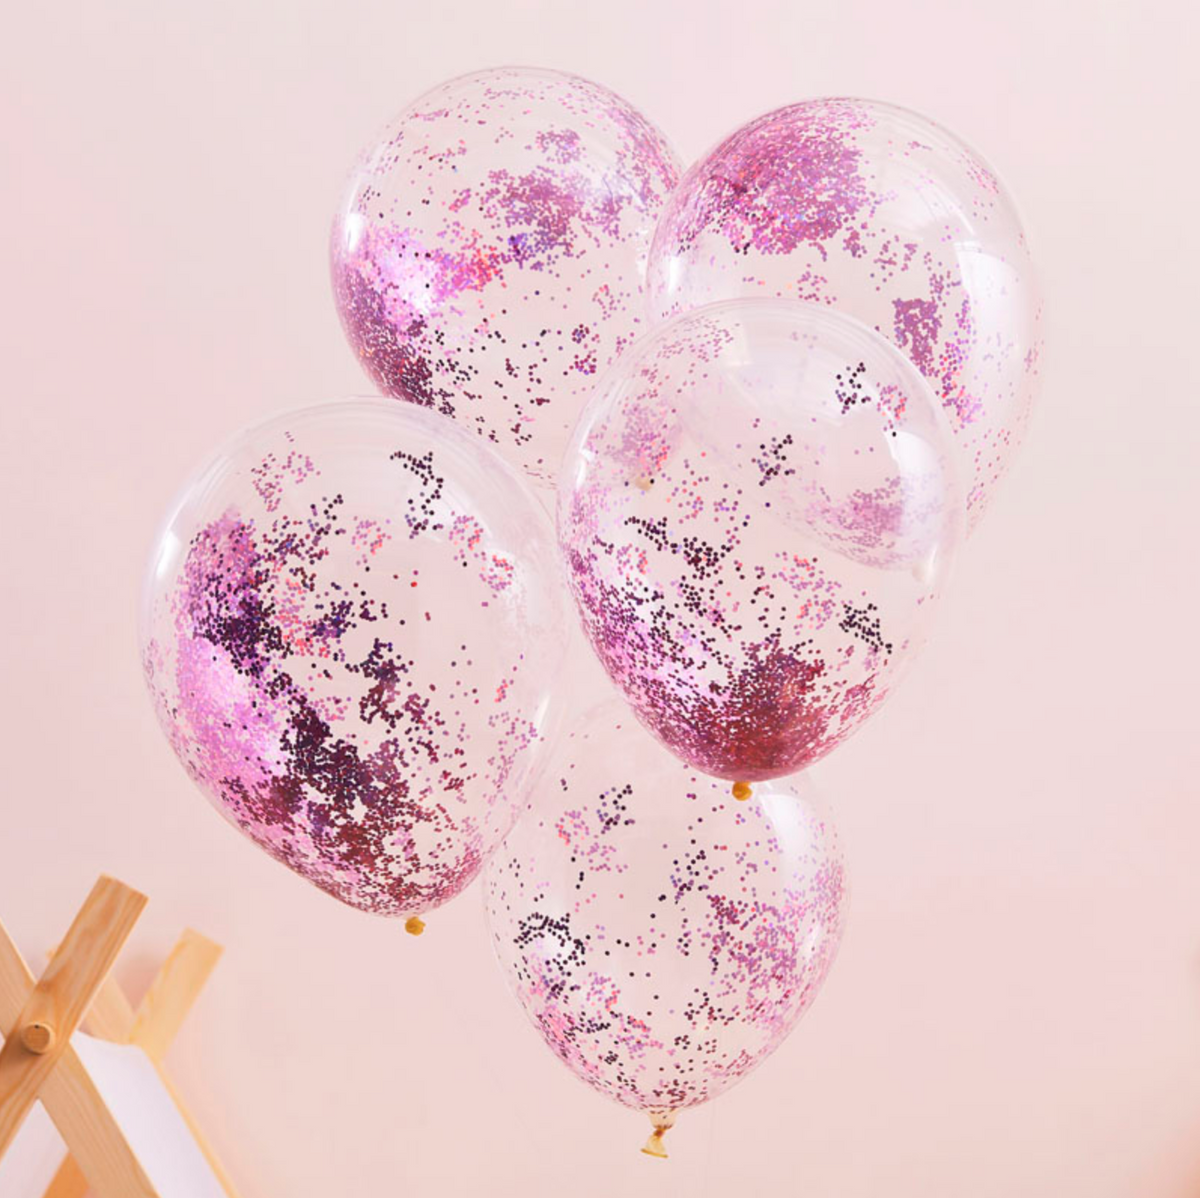 Sleepover / Pamper Party - Pink Glitter-Filled Balloons